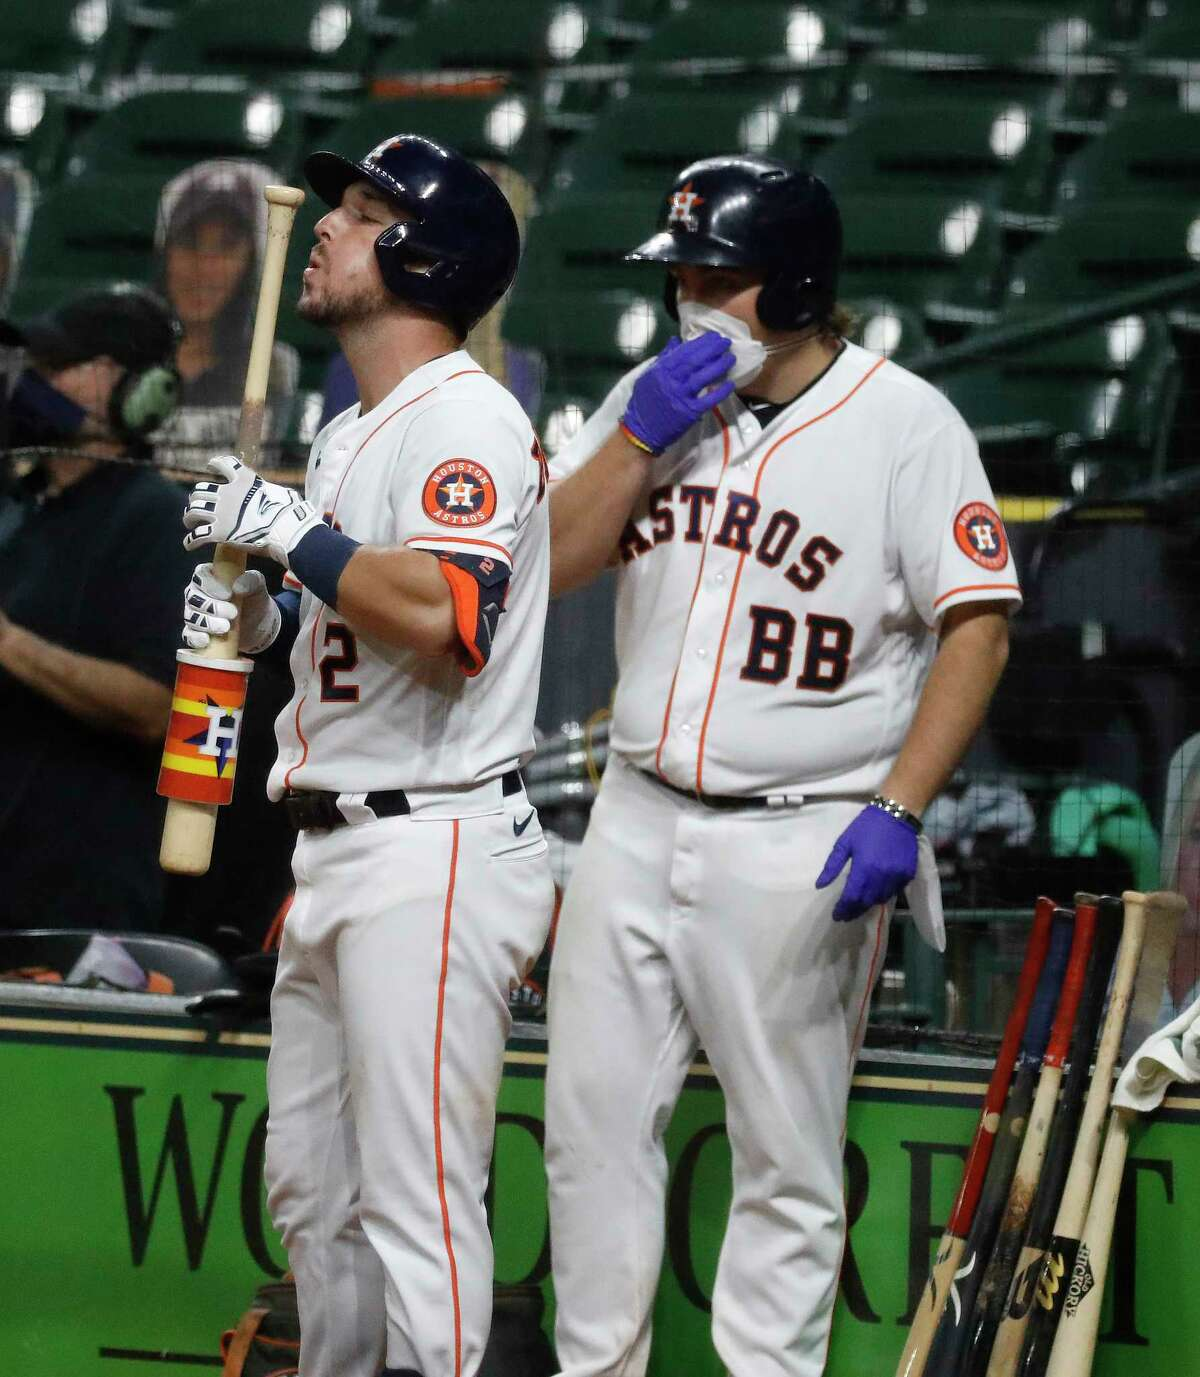 Houston Astros Alex Bregman blows on his bat in the on deck circle during the sixth inning of an MLB baseball game at Minute Maid Park, Wednesday, August 12, 2020, in Houston.